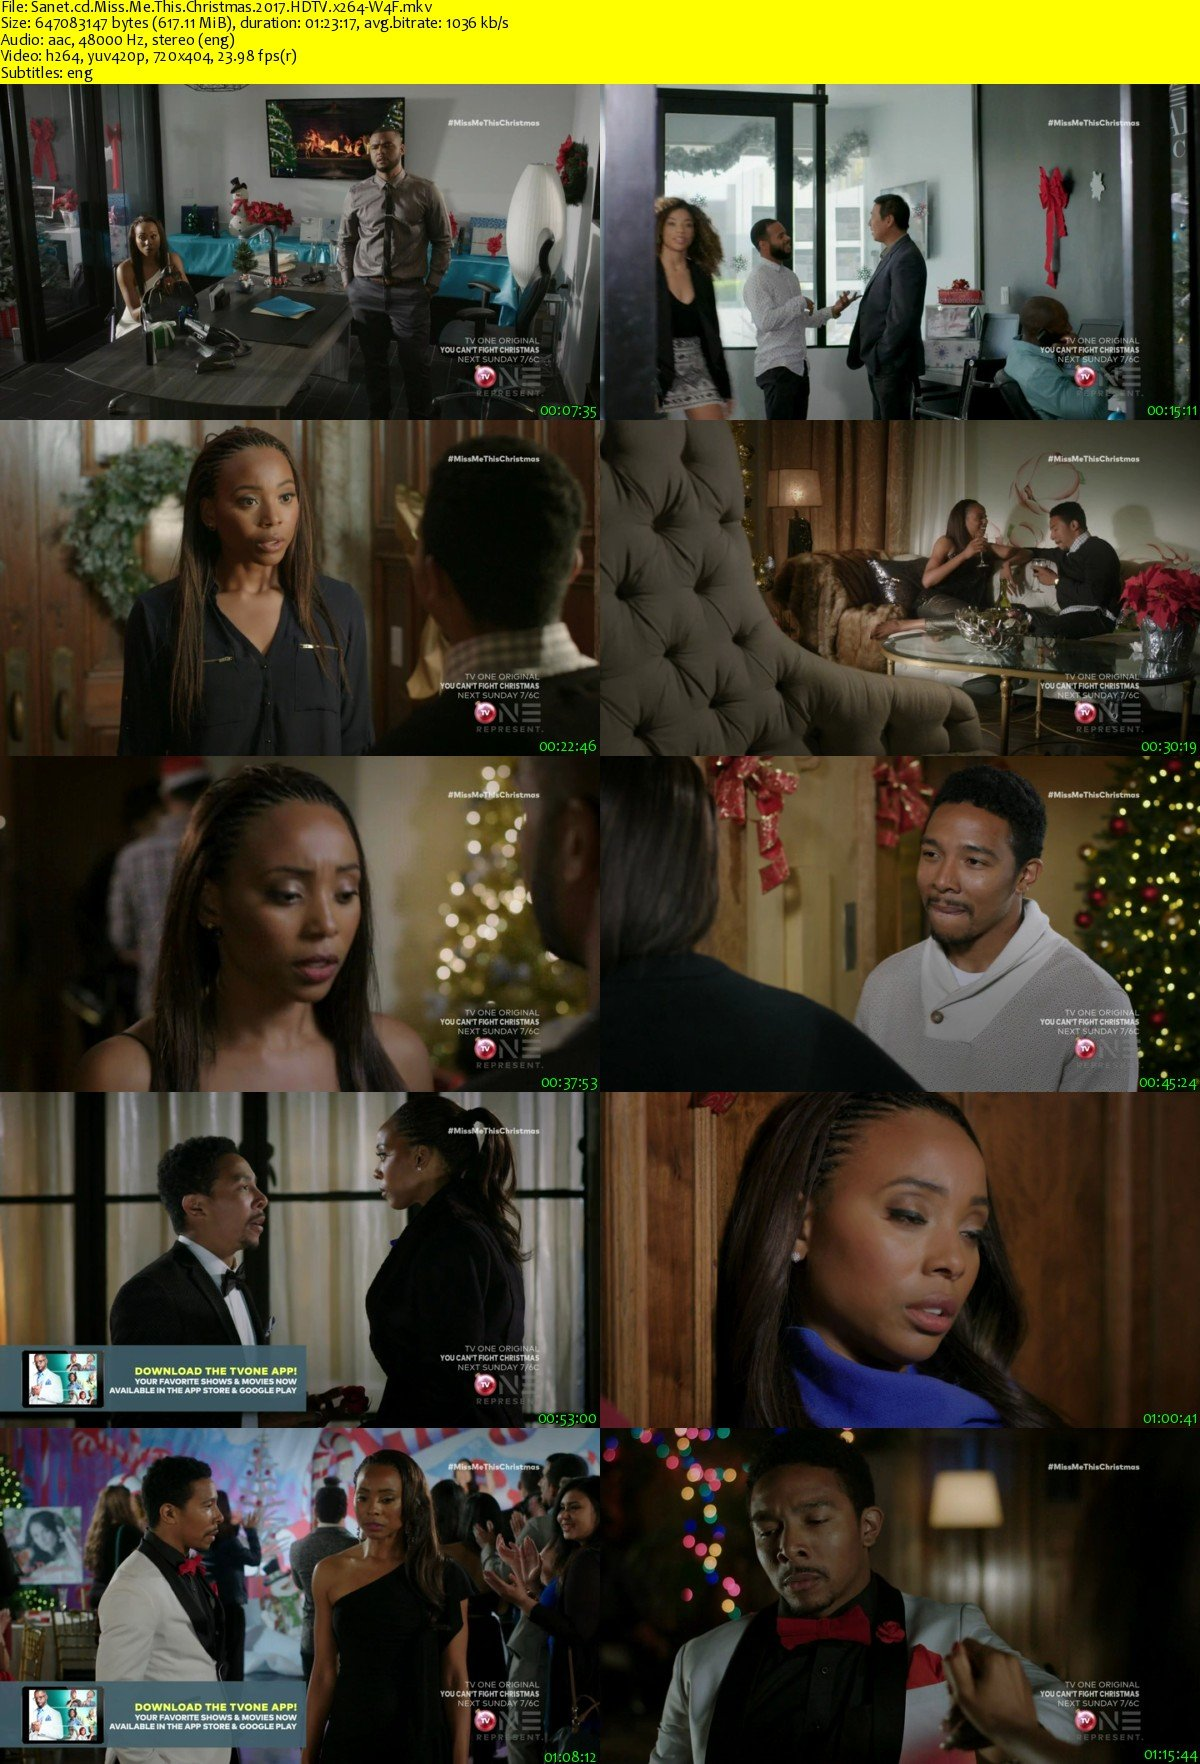 Miss Me This Christmas.Download Miss Me This Christmas 2017 Hdtv X264 W4f Softarchive